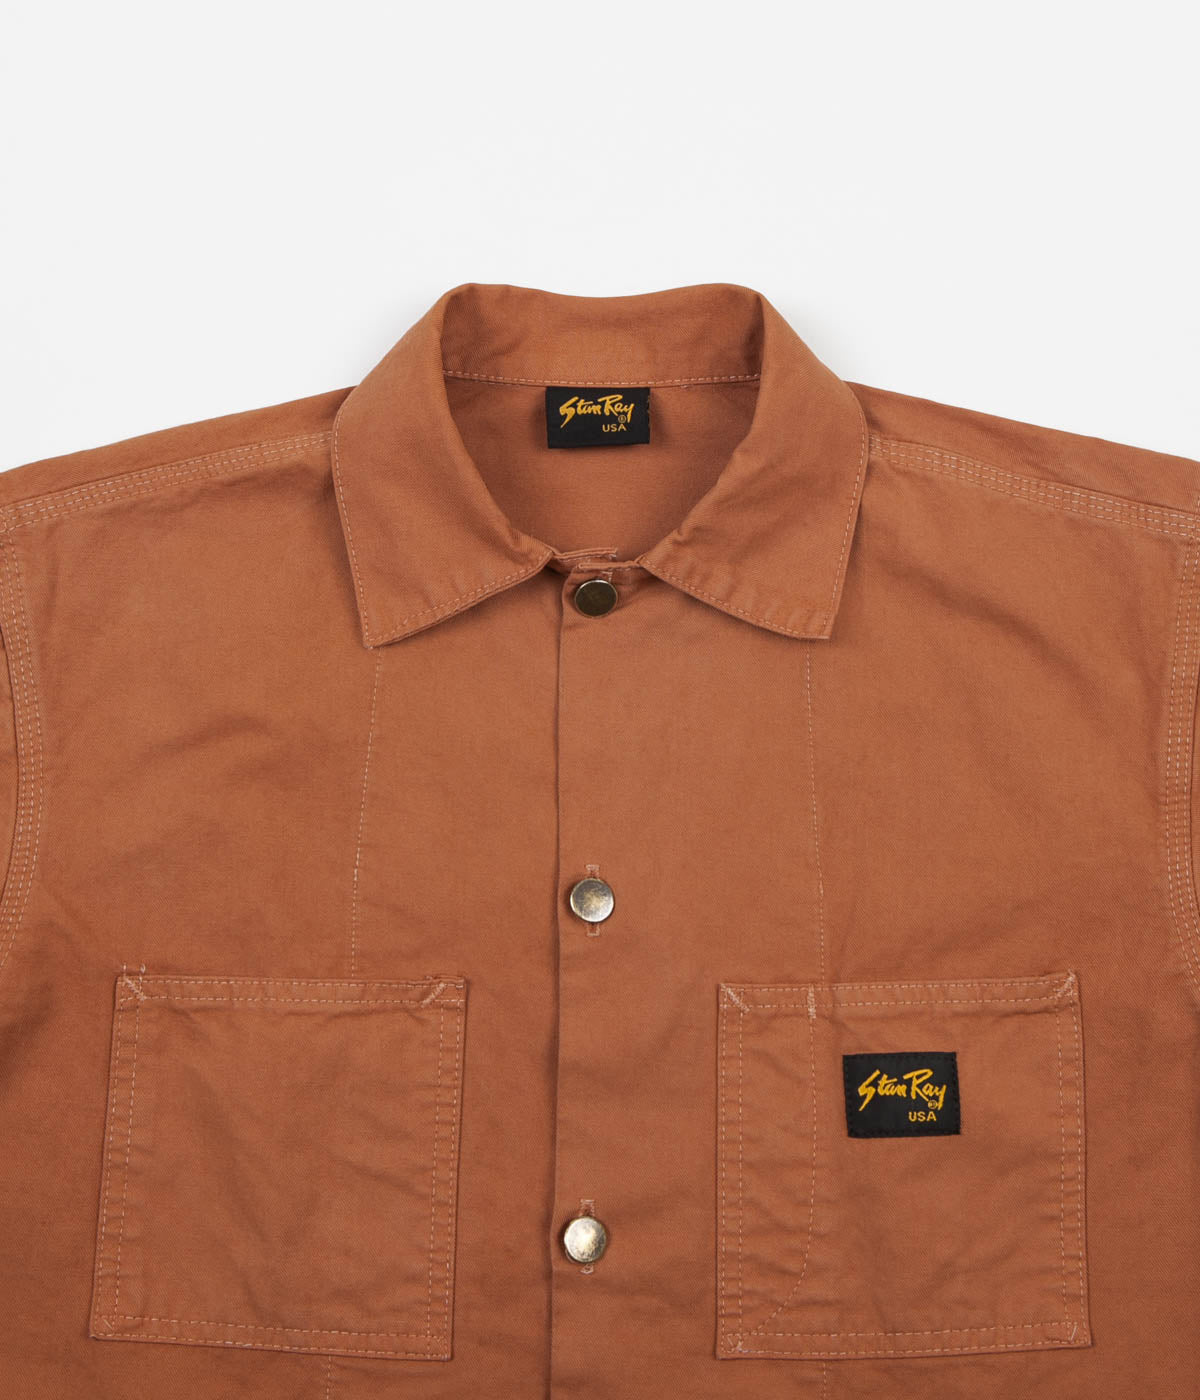 Stan Ray Shop Jacket - OG Golden Brown